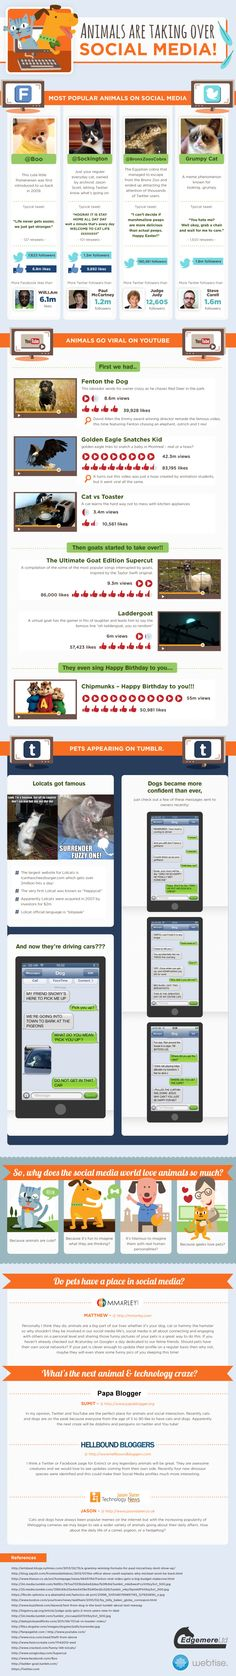 Animals Are Taking Over Social Media - Infographic